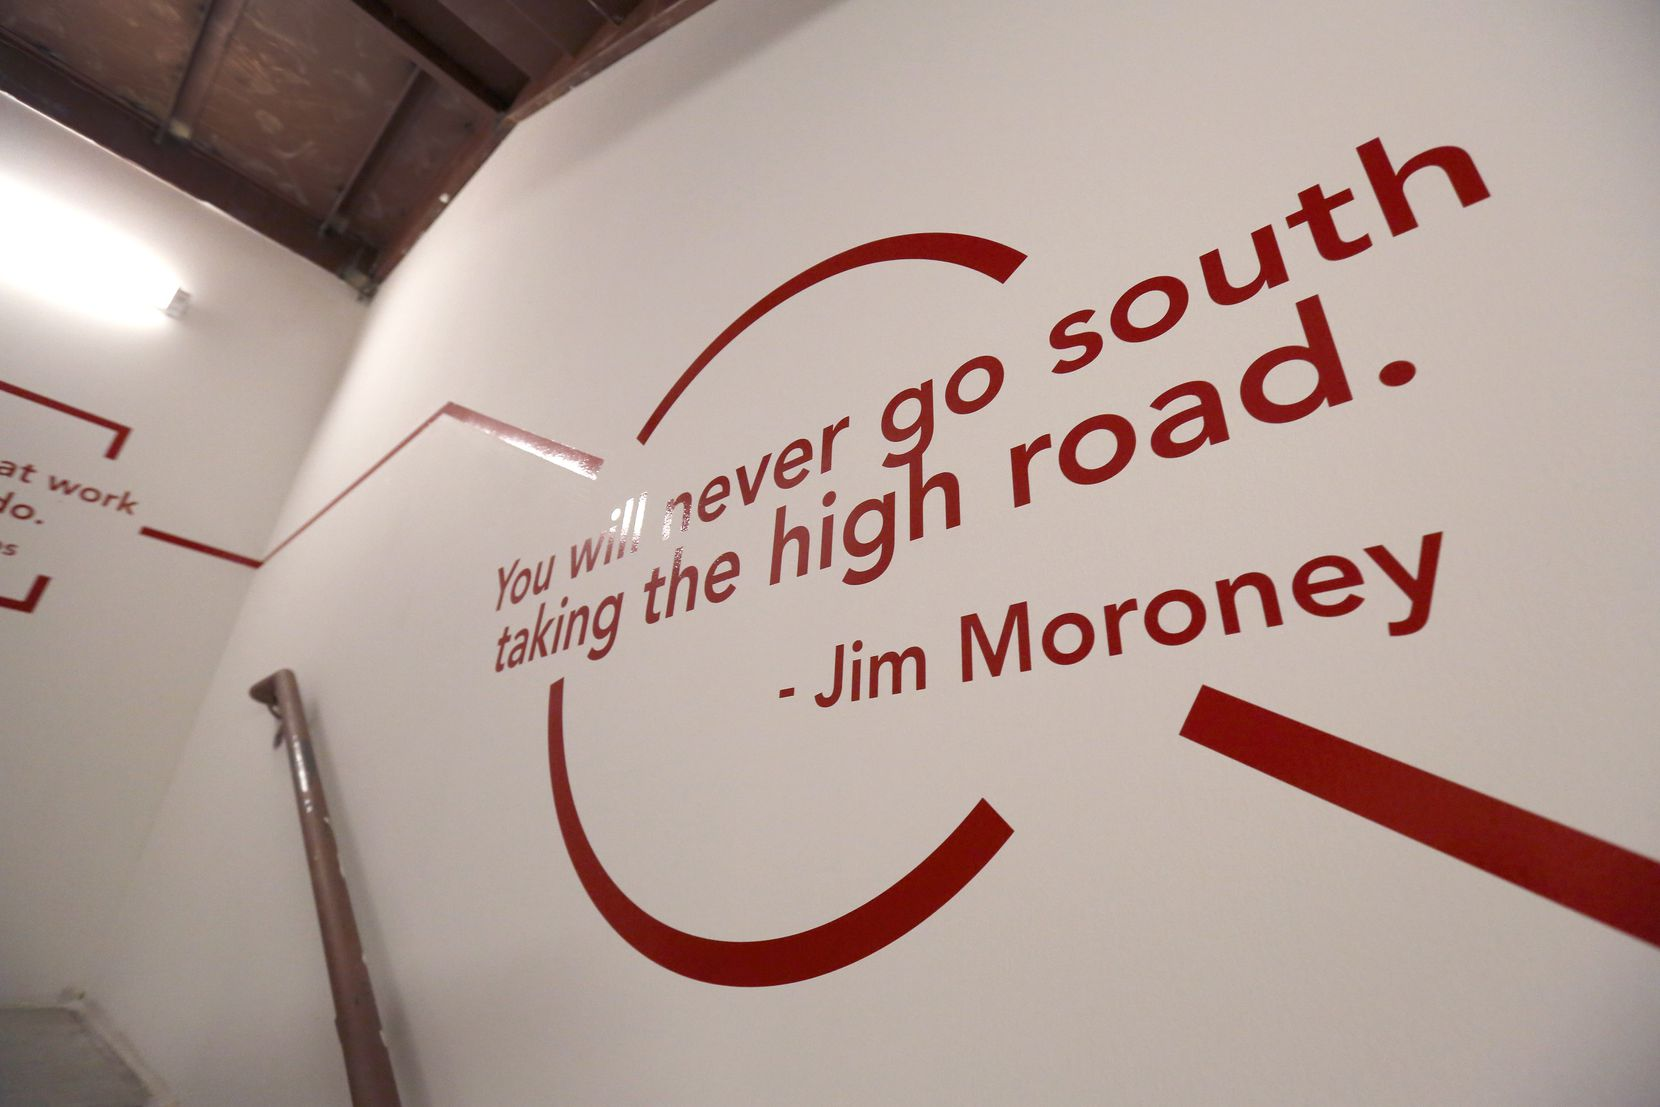 A quote from Jim Moroney can be seen in a stairwell at The Dallas Morning News' building on Commerce Street downtown.